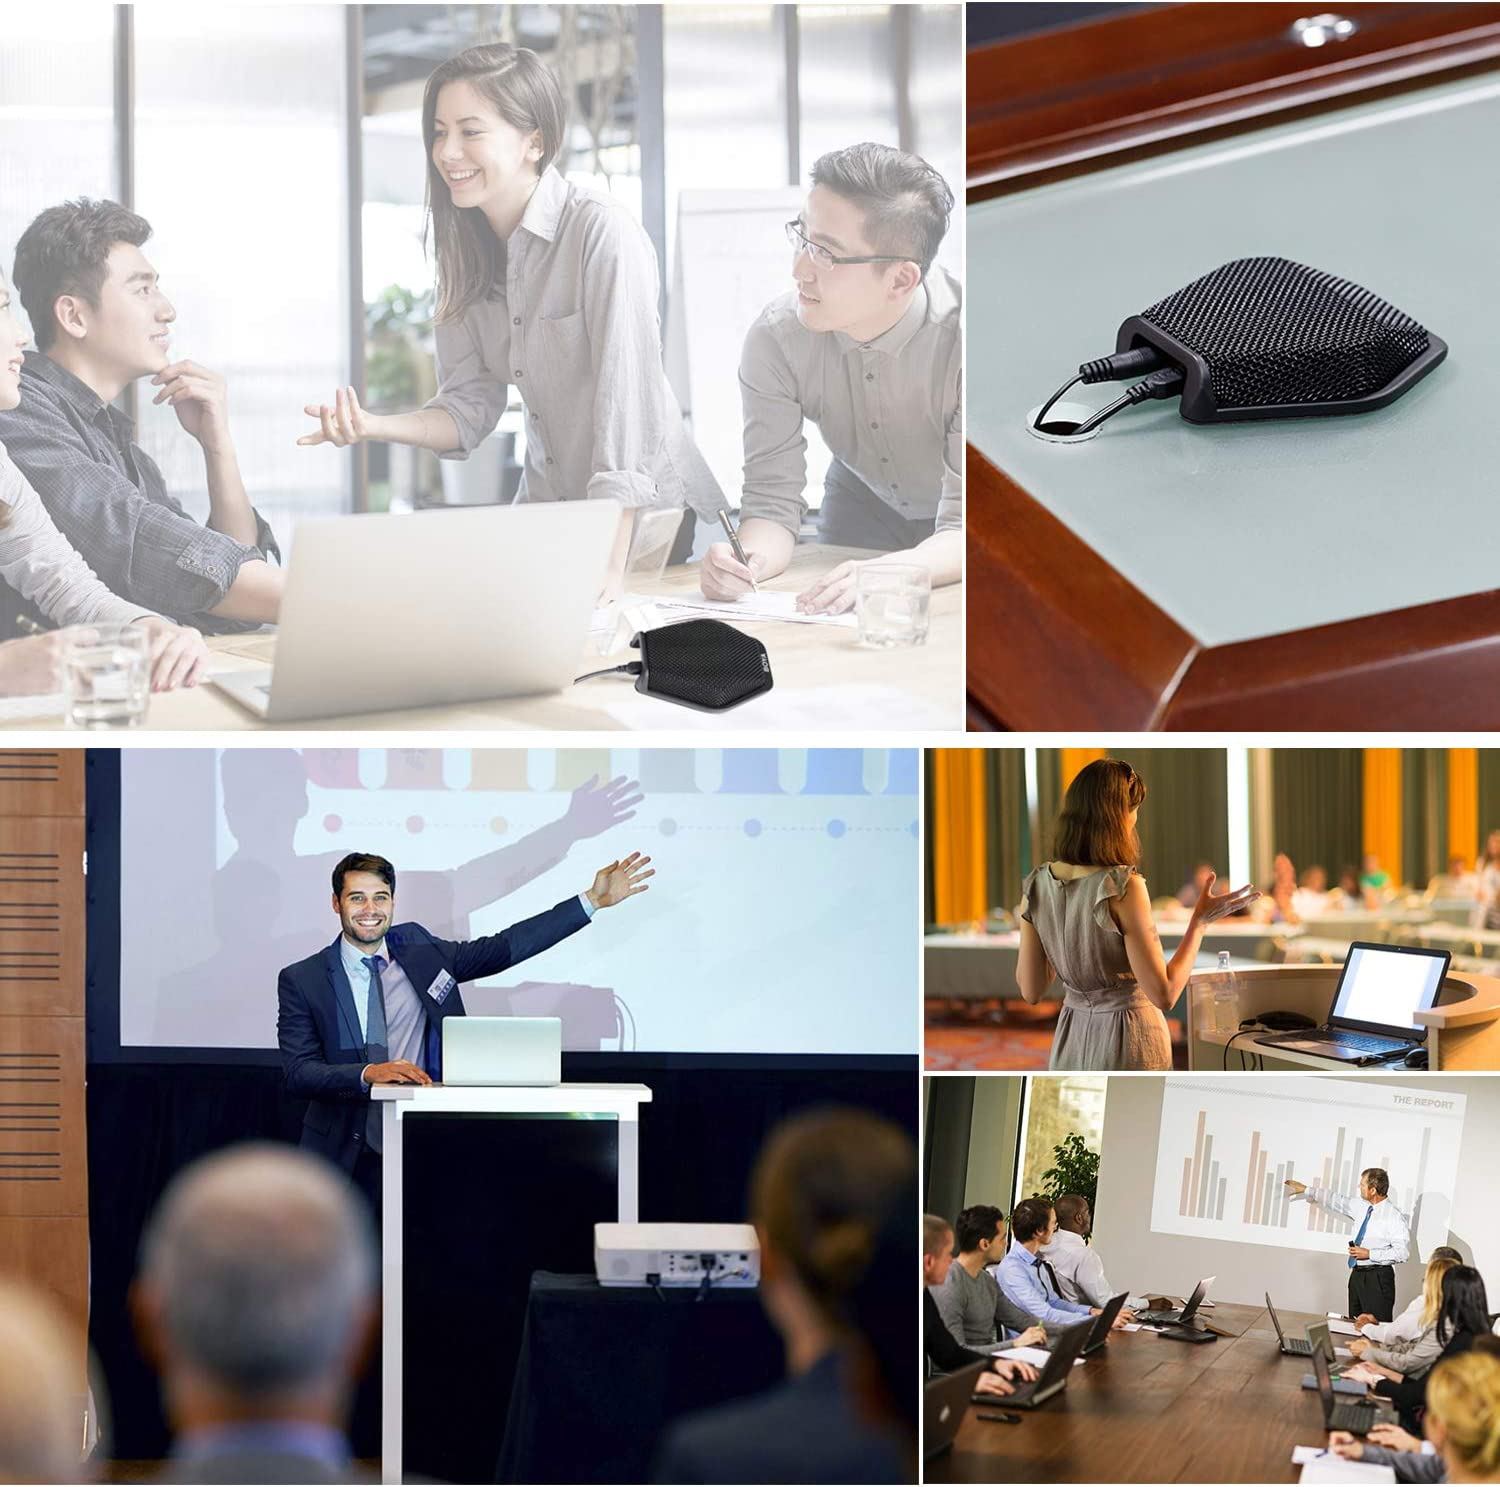 USB Conference Microphone BOYA Table Top Mic Condenser Cardioid Desktop Computer Teleconference Microphone with Real-time Monitor 180/° for Windows Mac Laptop Business Meeting Seminar